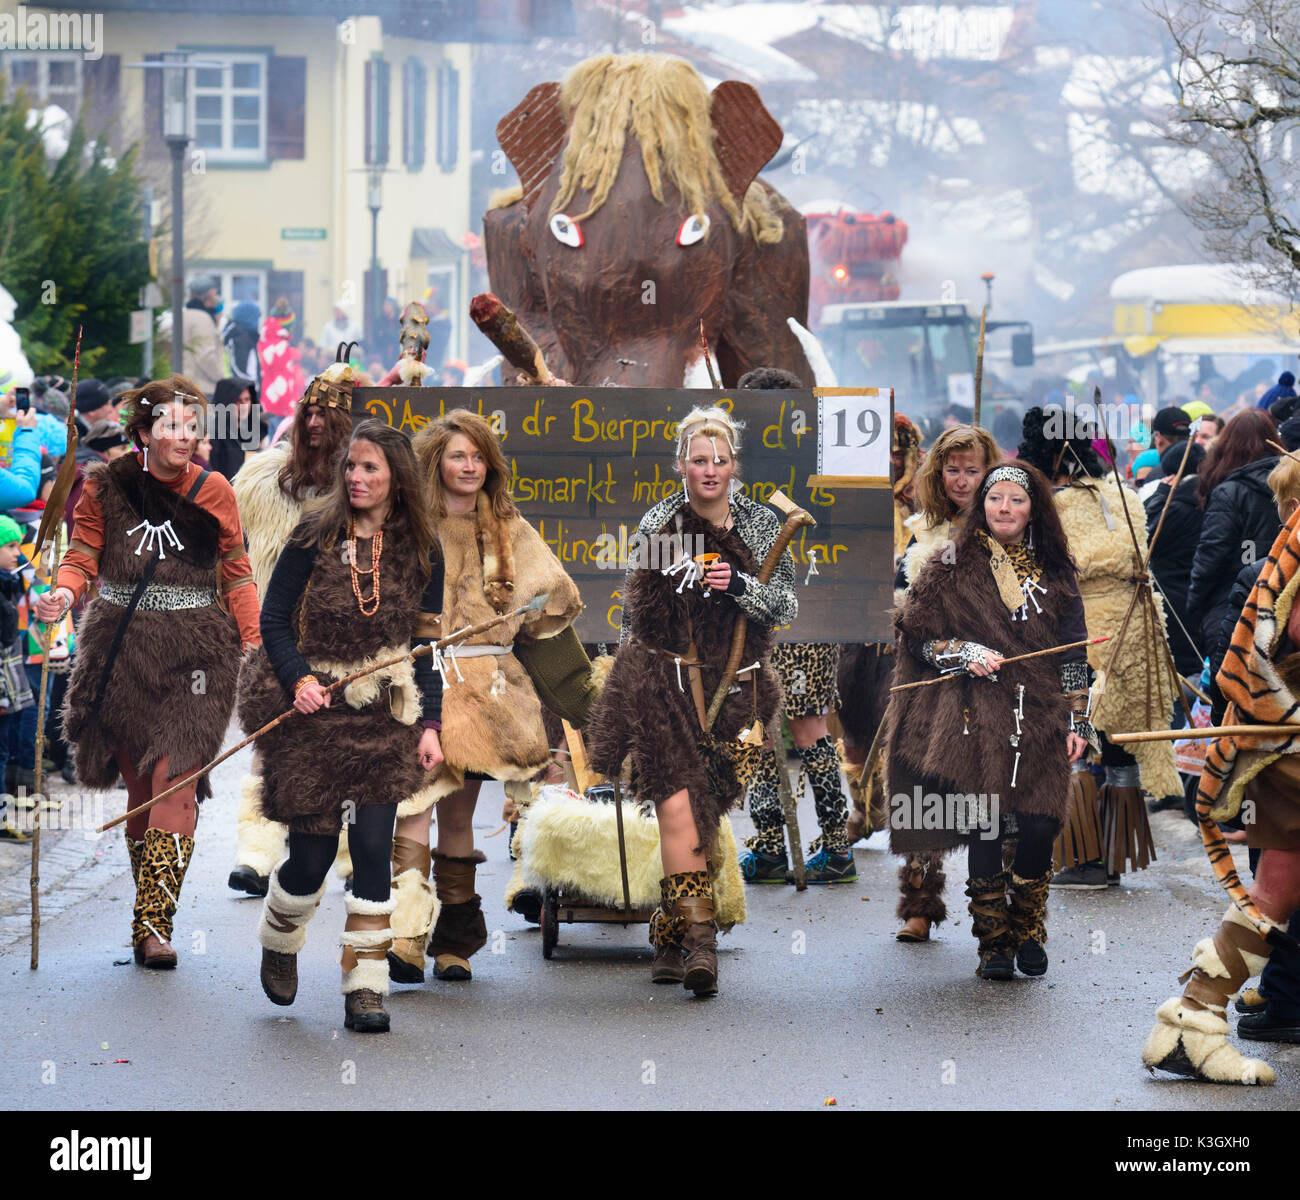 carnival procession on the high street of Bad Hindelang on carnival Sunday with many artistic masks, as for example primordial person close mammoth - Stock Image